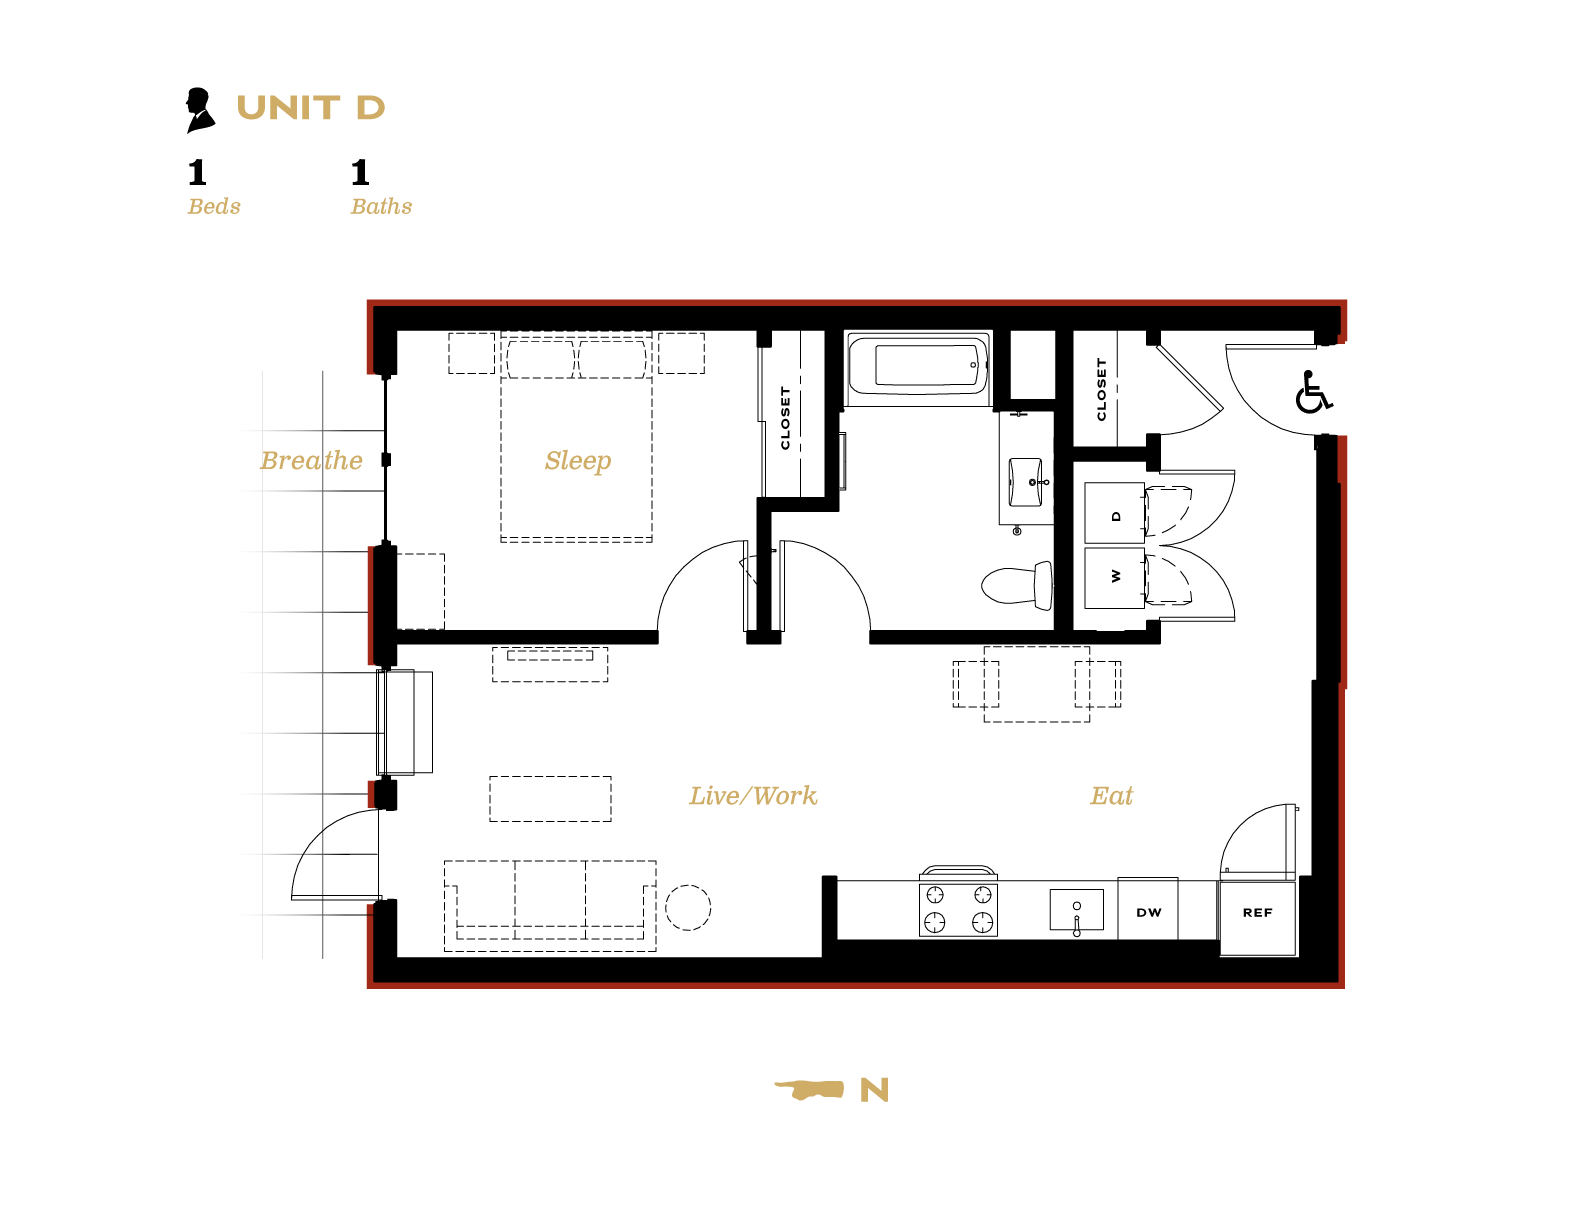 Unit D Unit D One bedroom with one bath floor plan